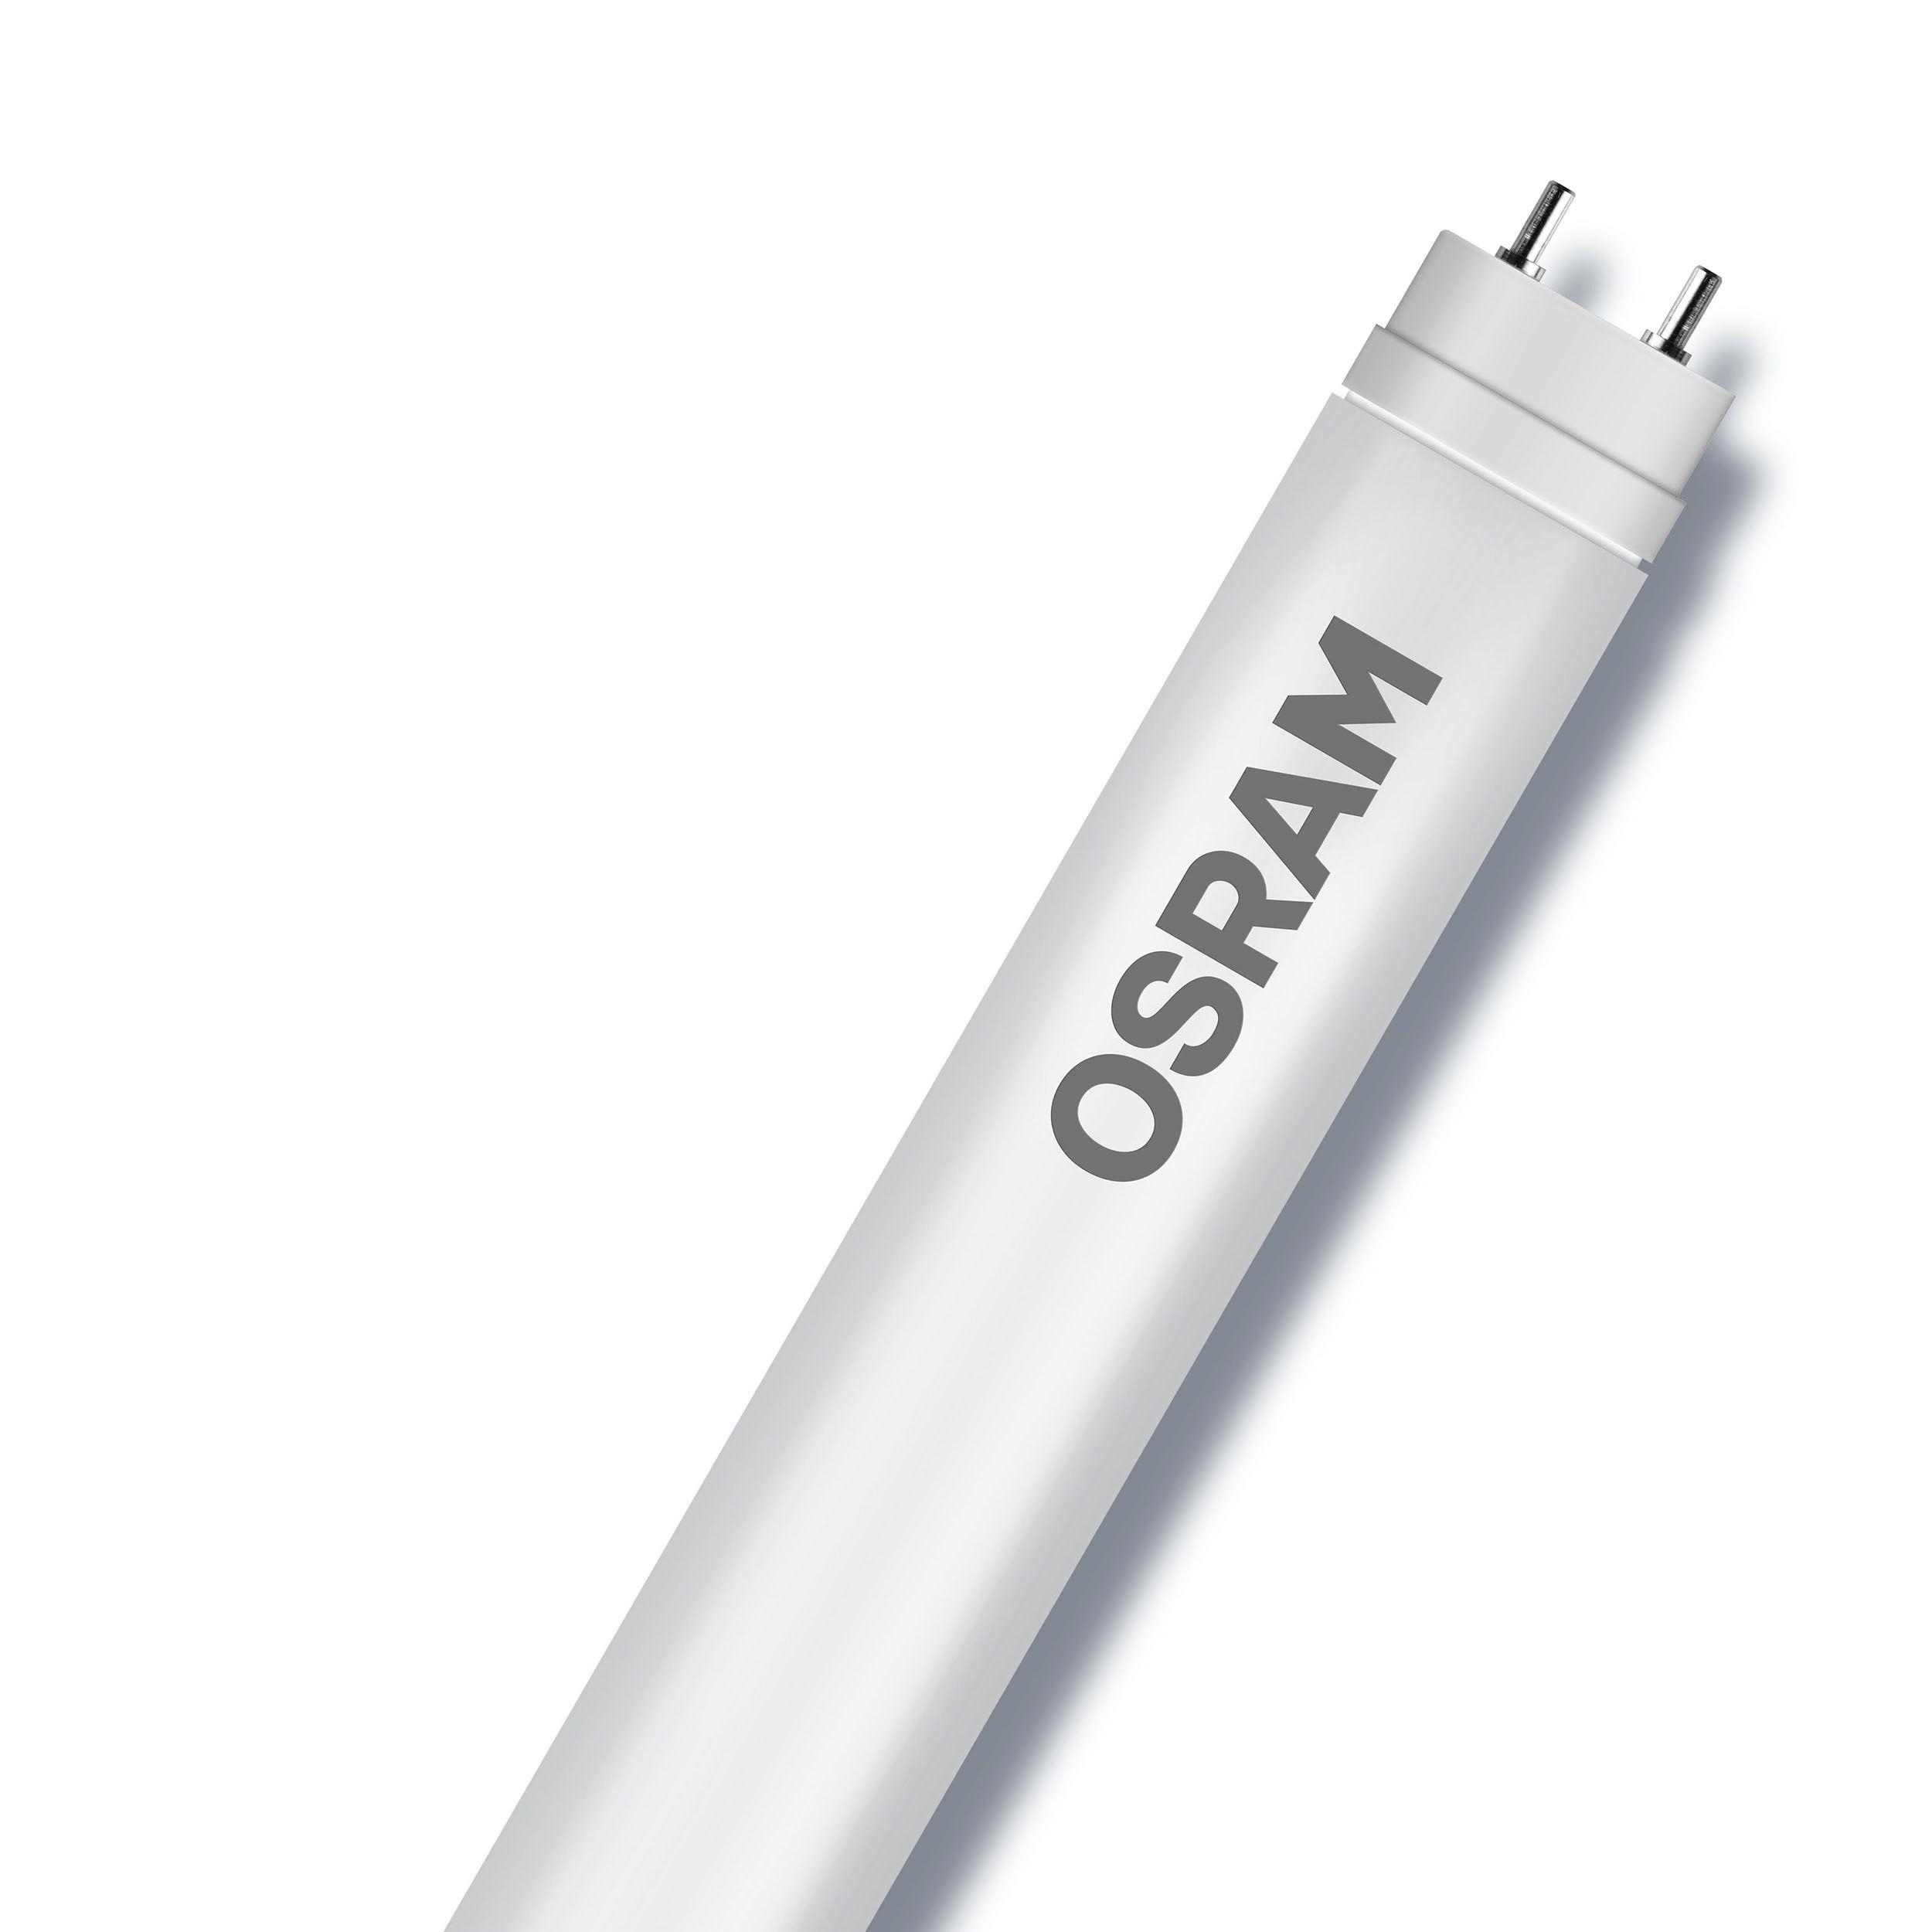 Лампа светодиодная Osram TSubstiTube Pure ST8P G13 21W 6500K 1800Lm 1500mm